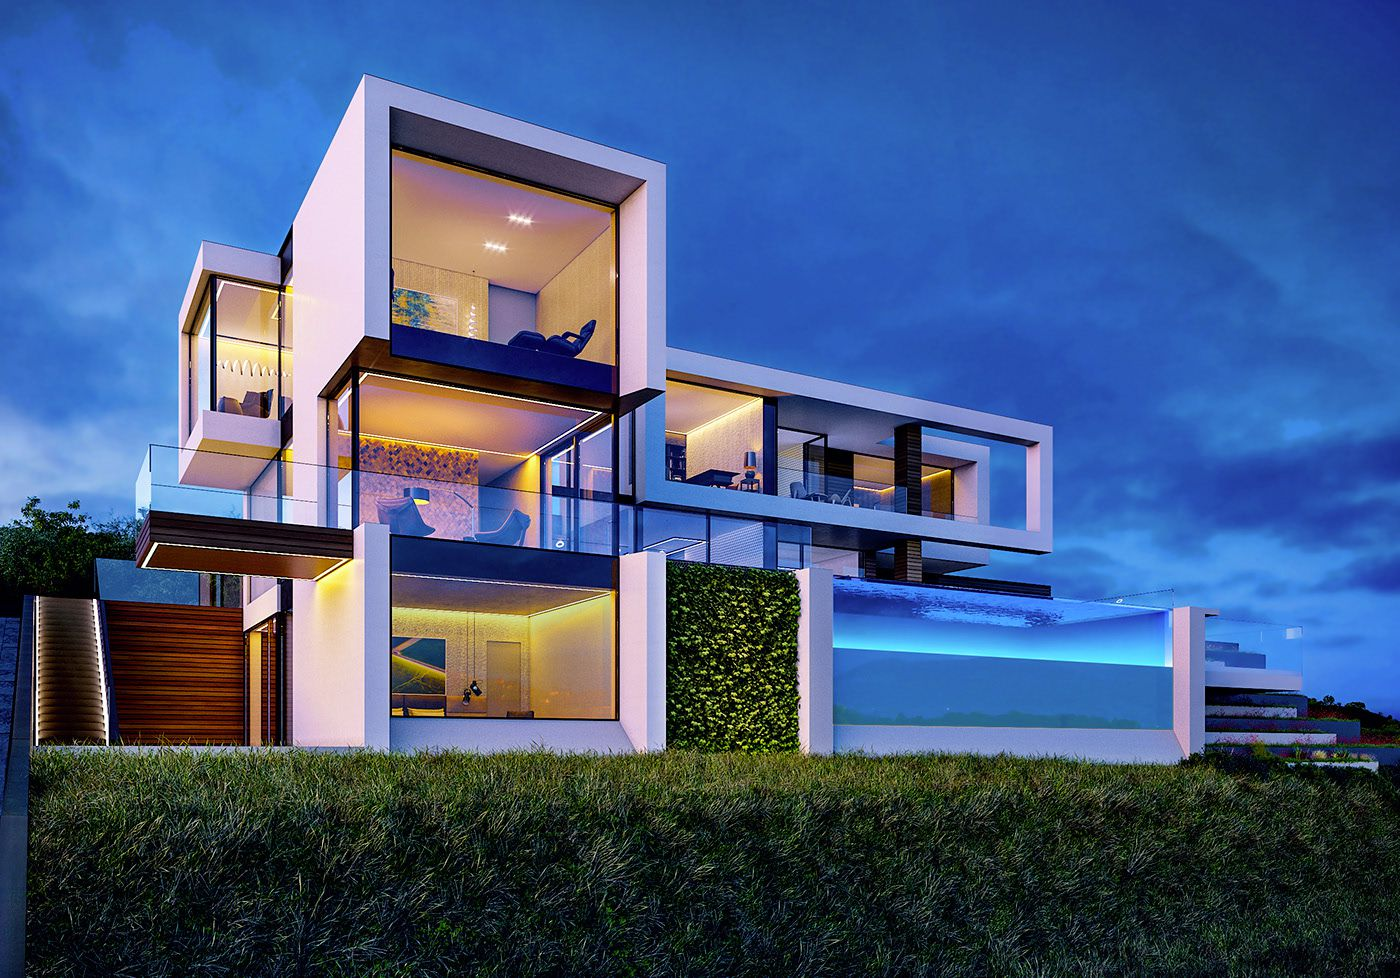 Design Concept for House in Limassol, Cyprus by Alexander Zhidkov Architect